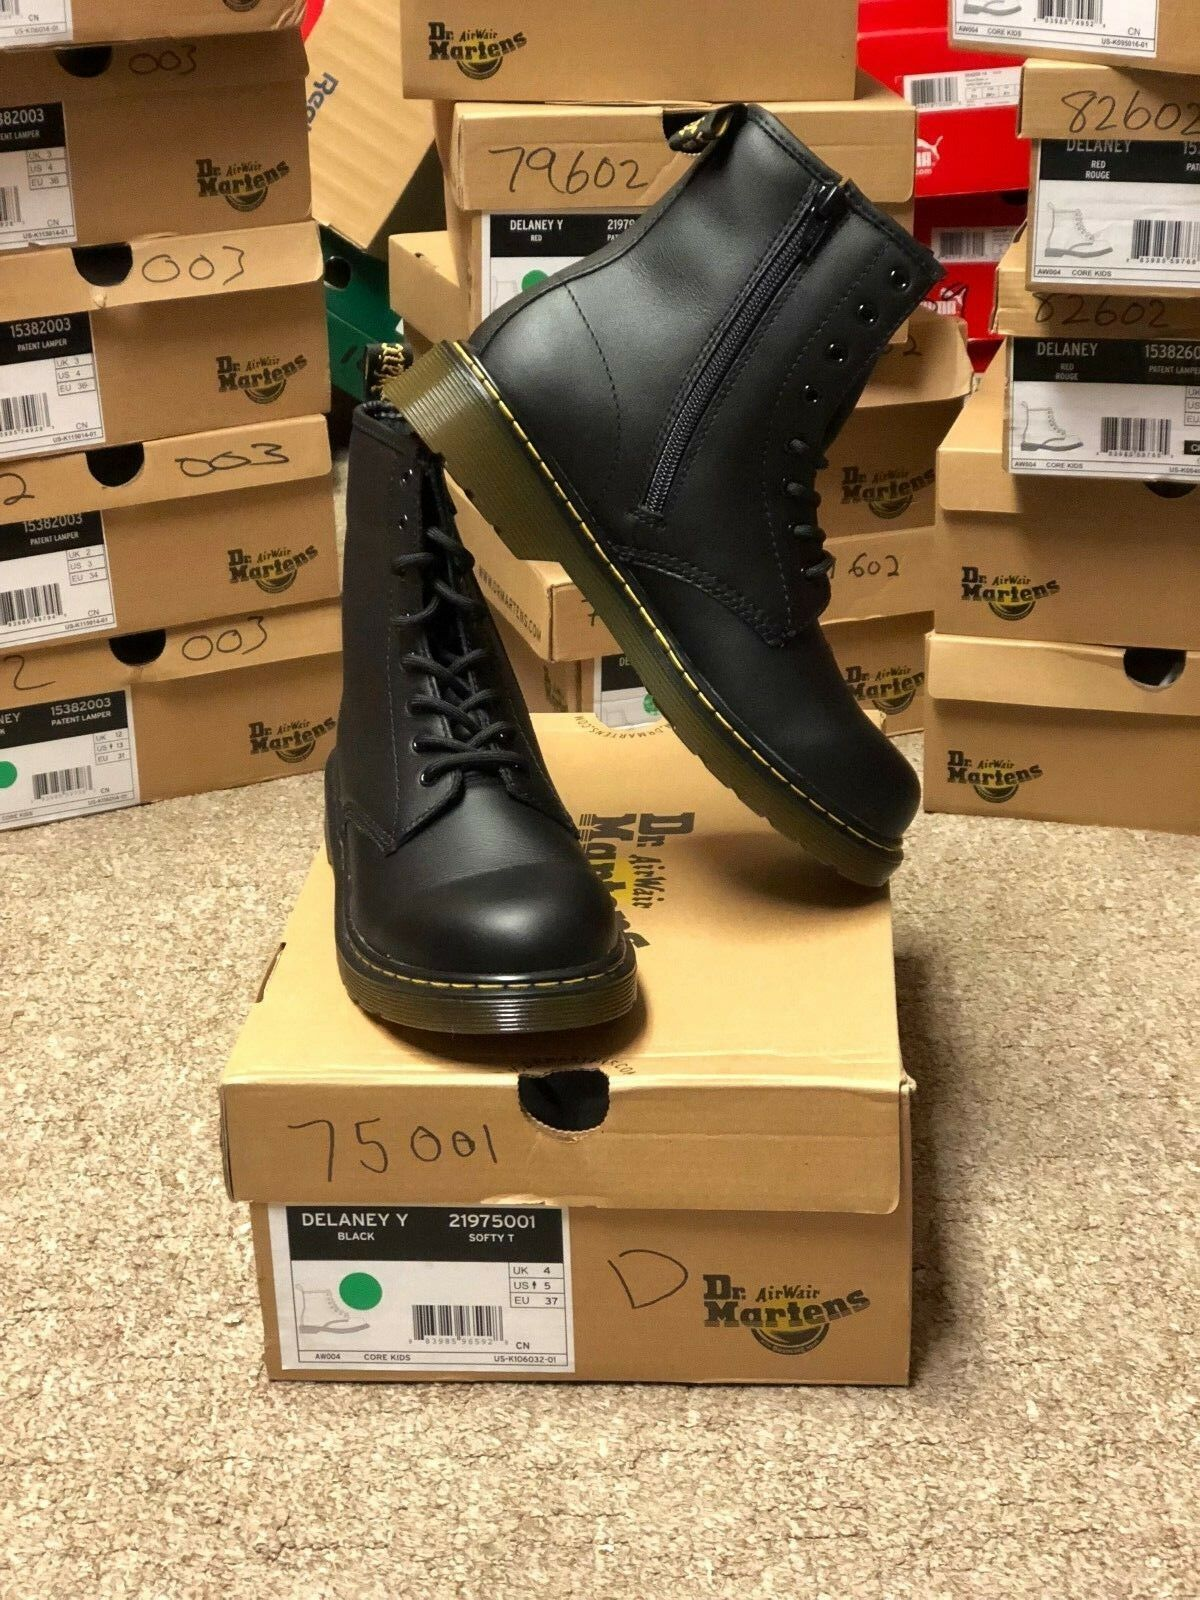 Dr. Martens Boots Black Matte for Men/Youth Brand New with Box in Varies Sizes